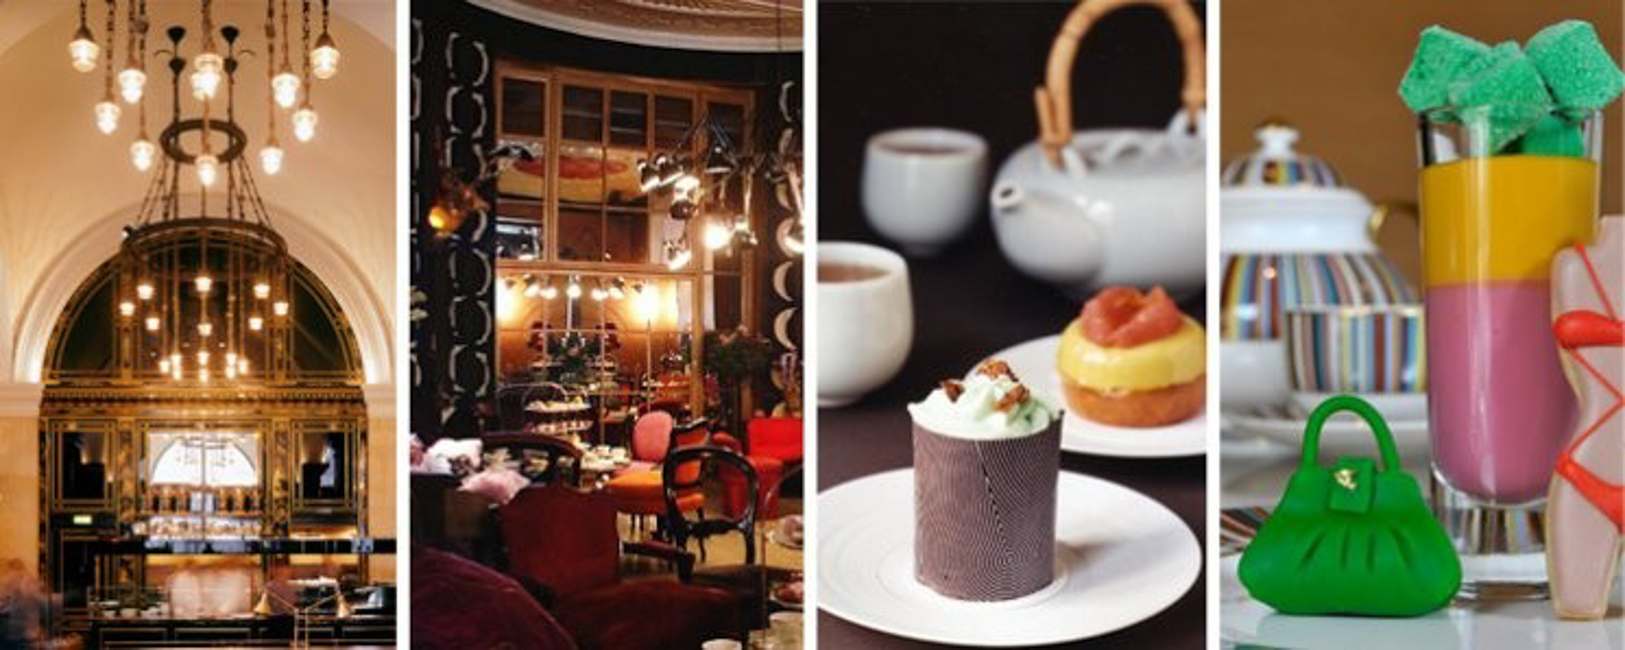 The magnificent Wolseley, the opulent Parlour at Sketch, Tea at Yauatcha and at The Berkeley